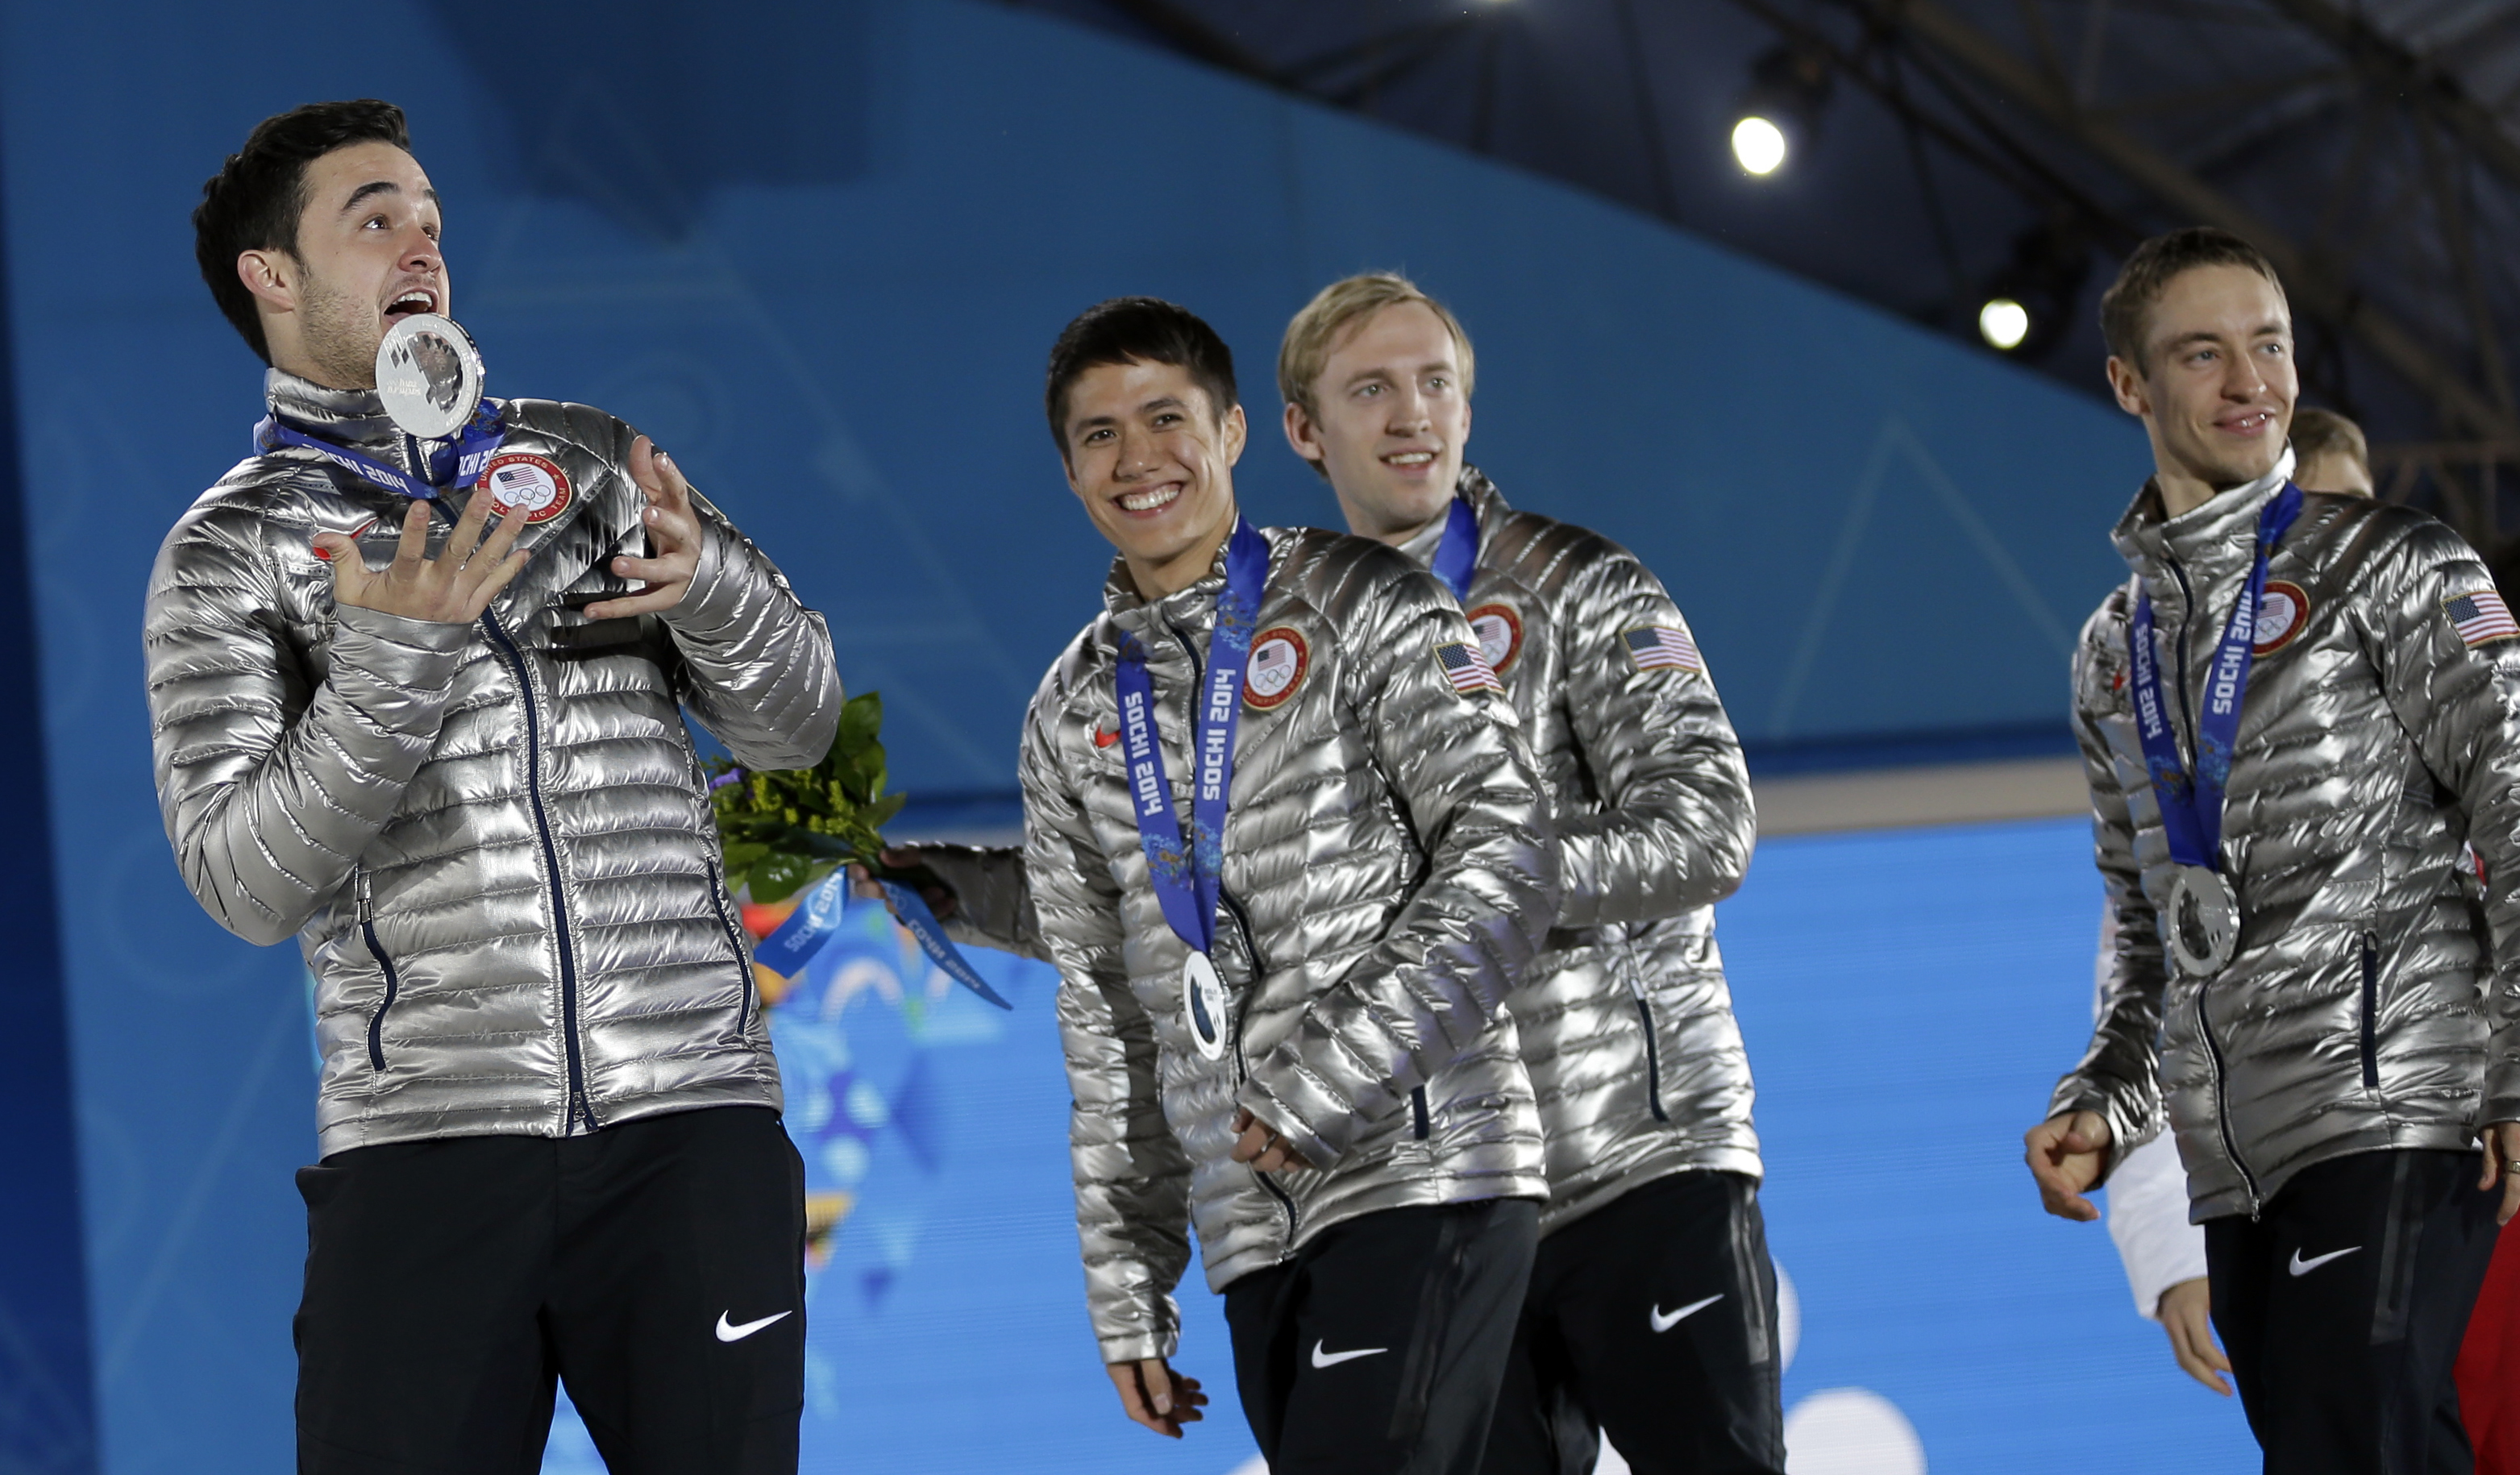 The team from the United States, who won the silver medal in the men's short track speedskating 5,000-meter relay, smile while exiting the stage following their medals ceremony at the 2014 Winter Olympics, Saturday, Feb. 22, 2014, in Sochi, Russia. (AP Photo/David Goldman)